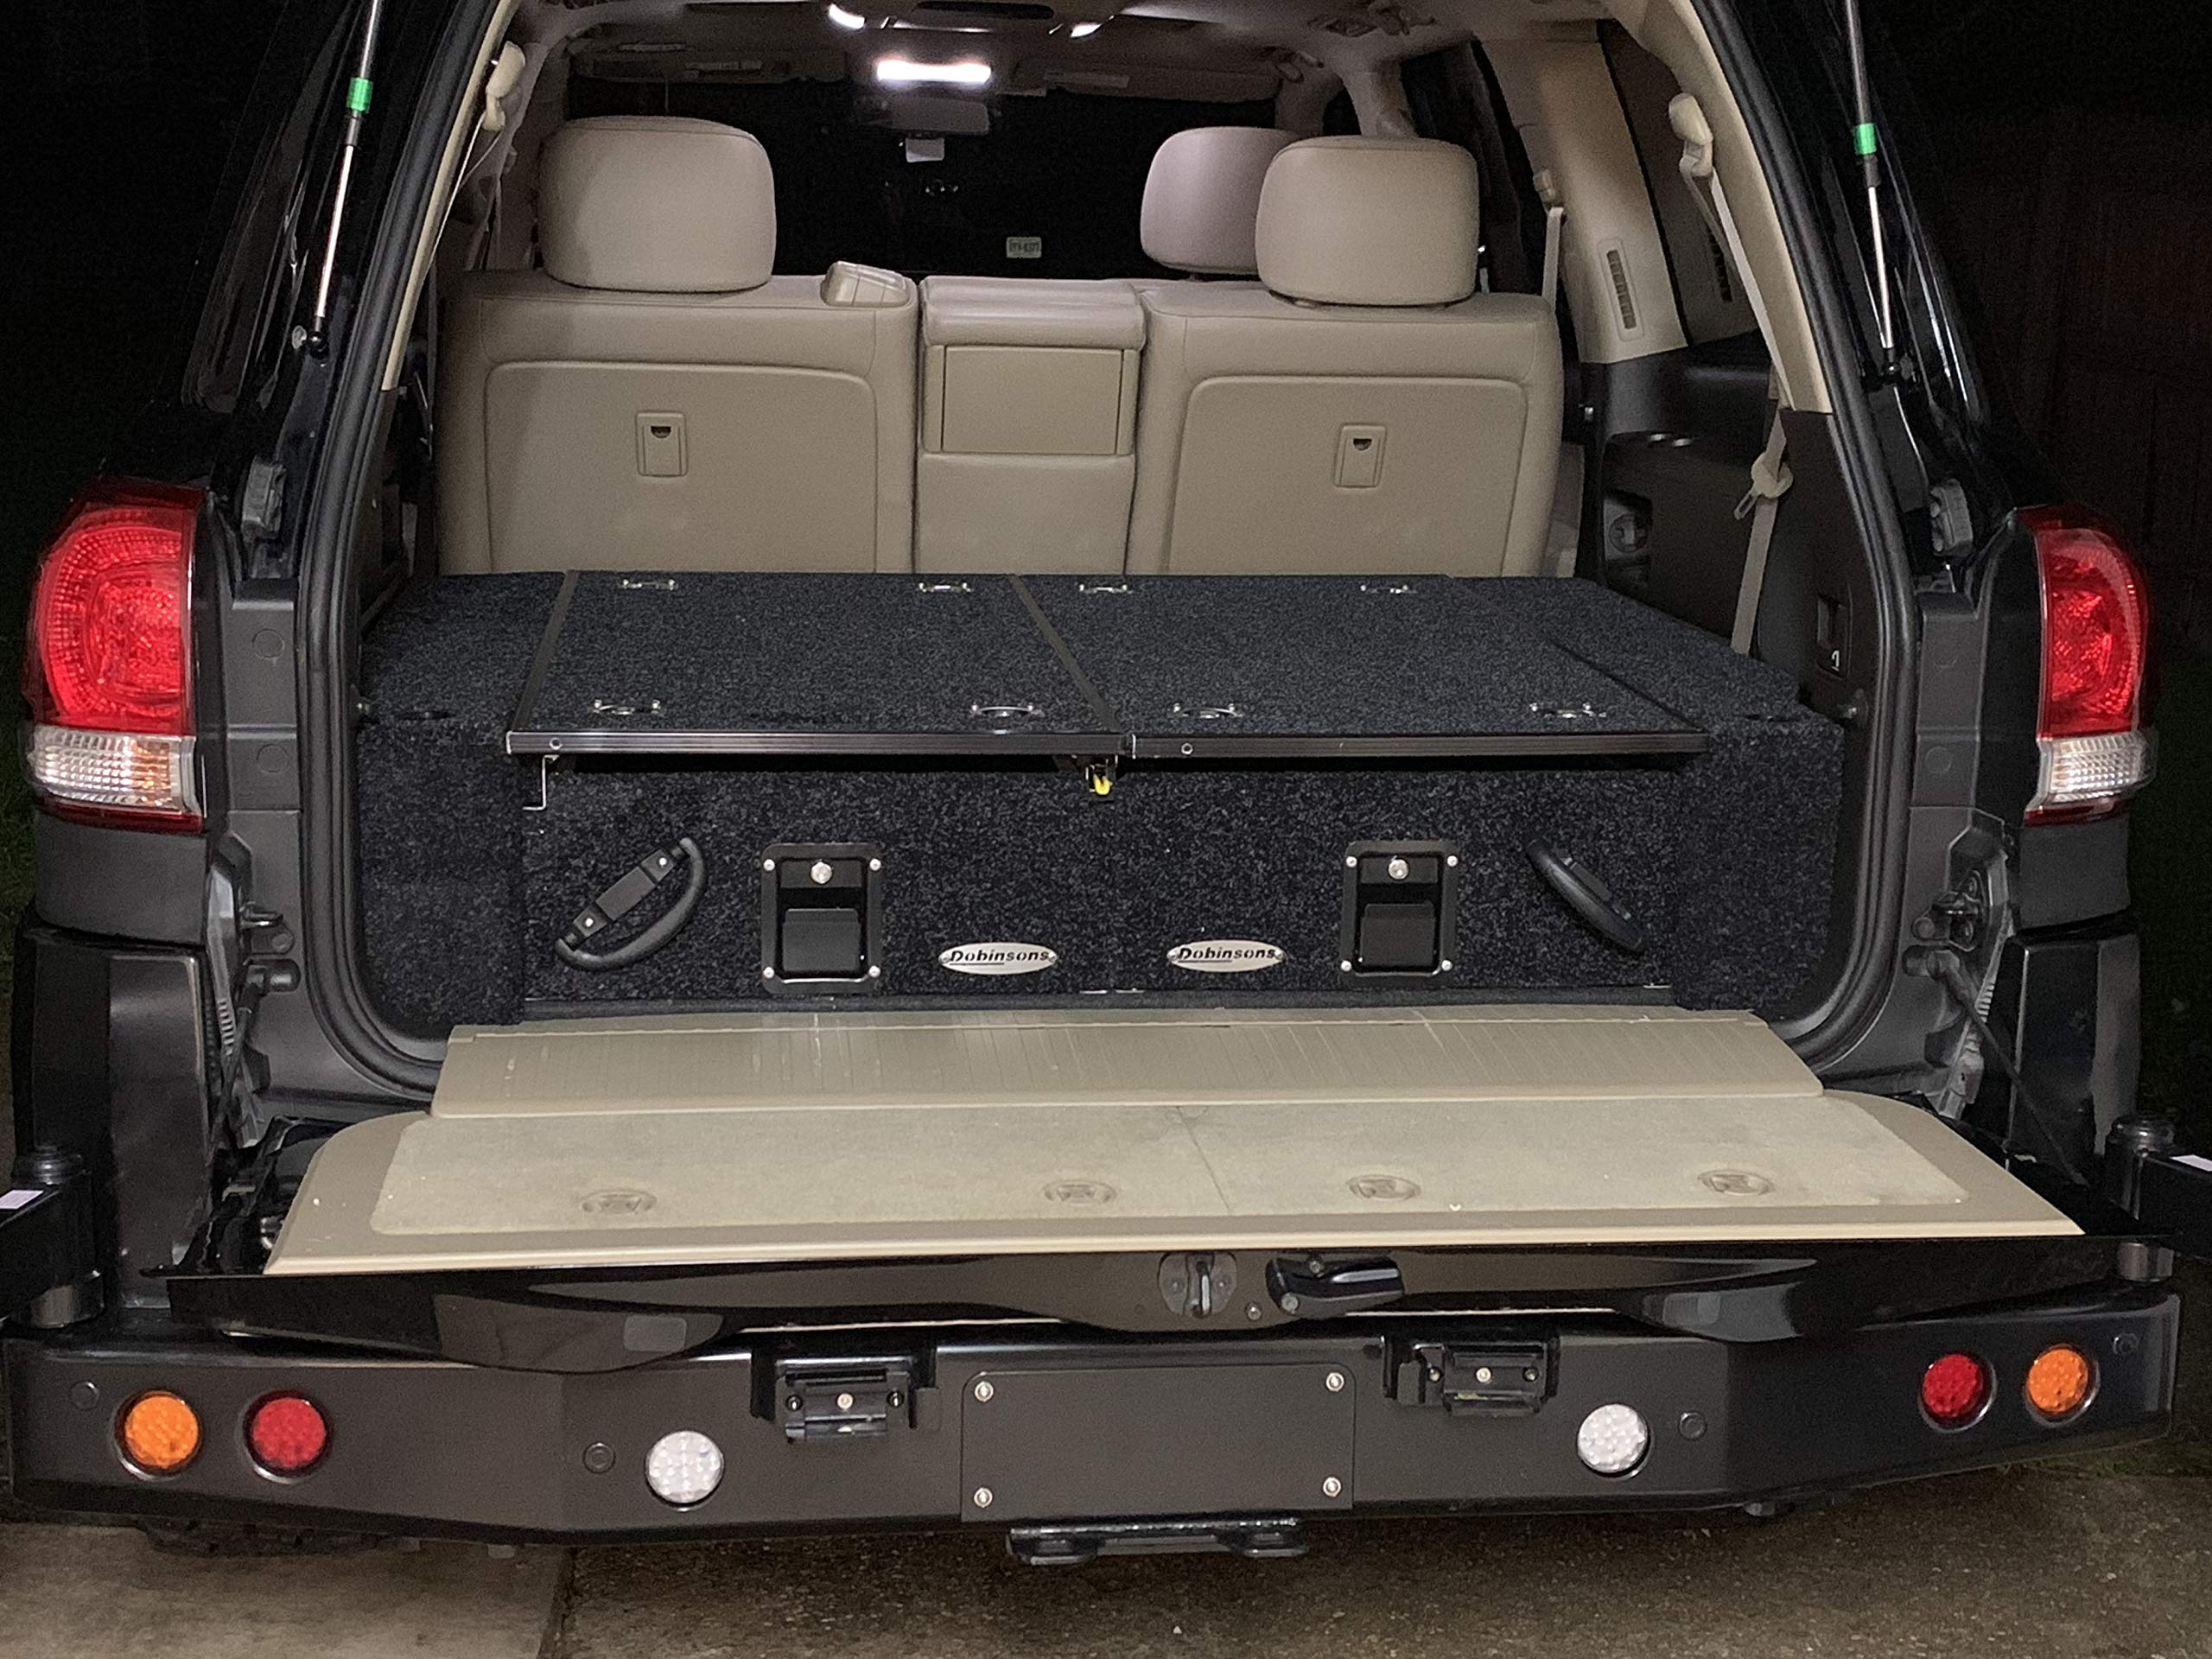 Dobinsons Rear Dual Roller Drawer System for Toyota Land Cruiser 200 Series 2007-2019 and Lexus LX570 with Fridge Slide and Side Panels